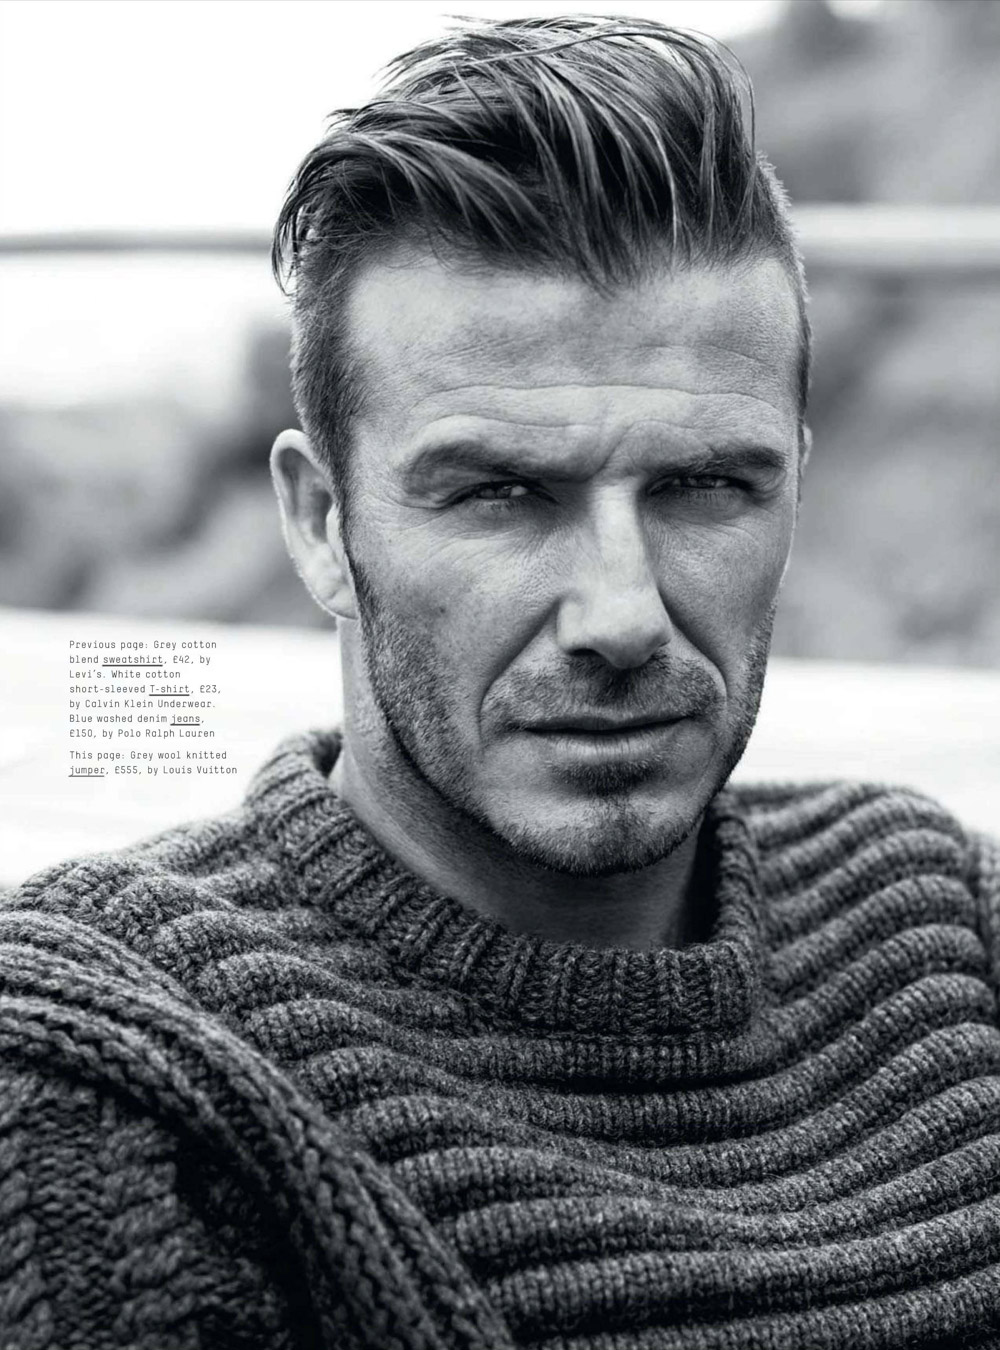 David beckham for esquire uk september 2012 un vaillant martien for David beckham